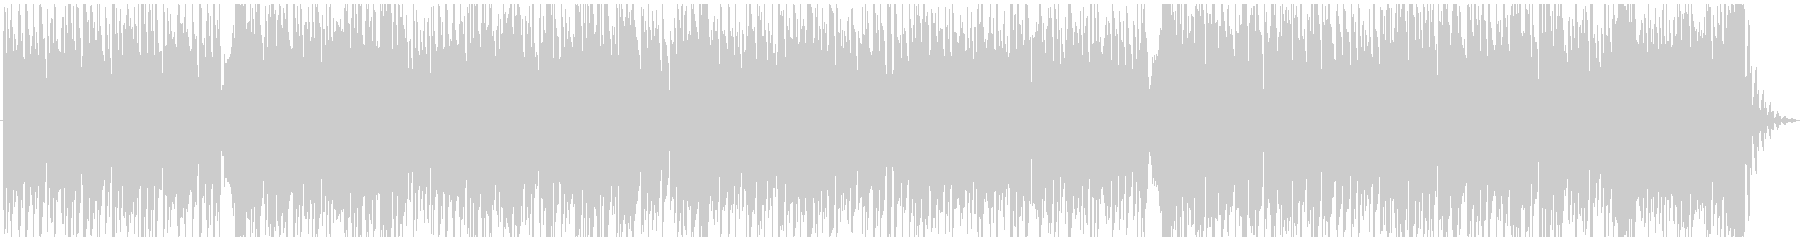 No synth / Fun energy that makes you feel better's unreproduced waveform